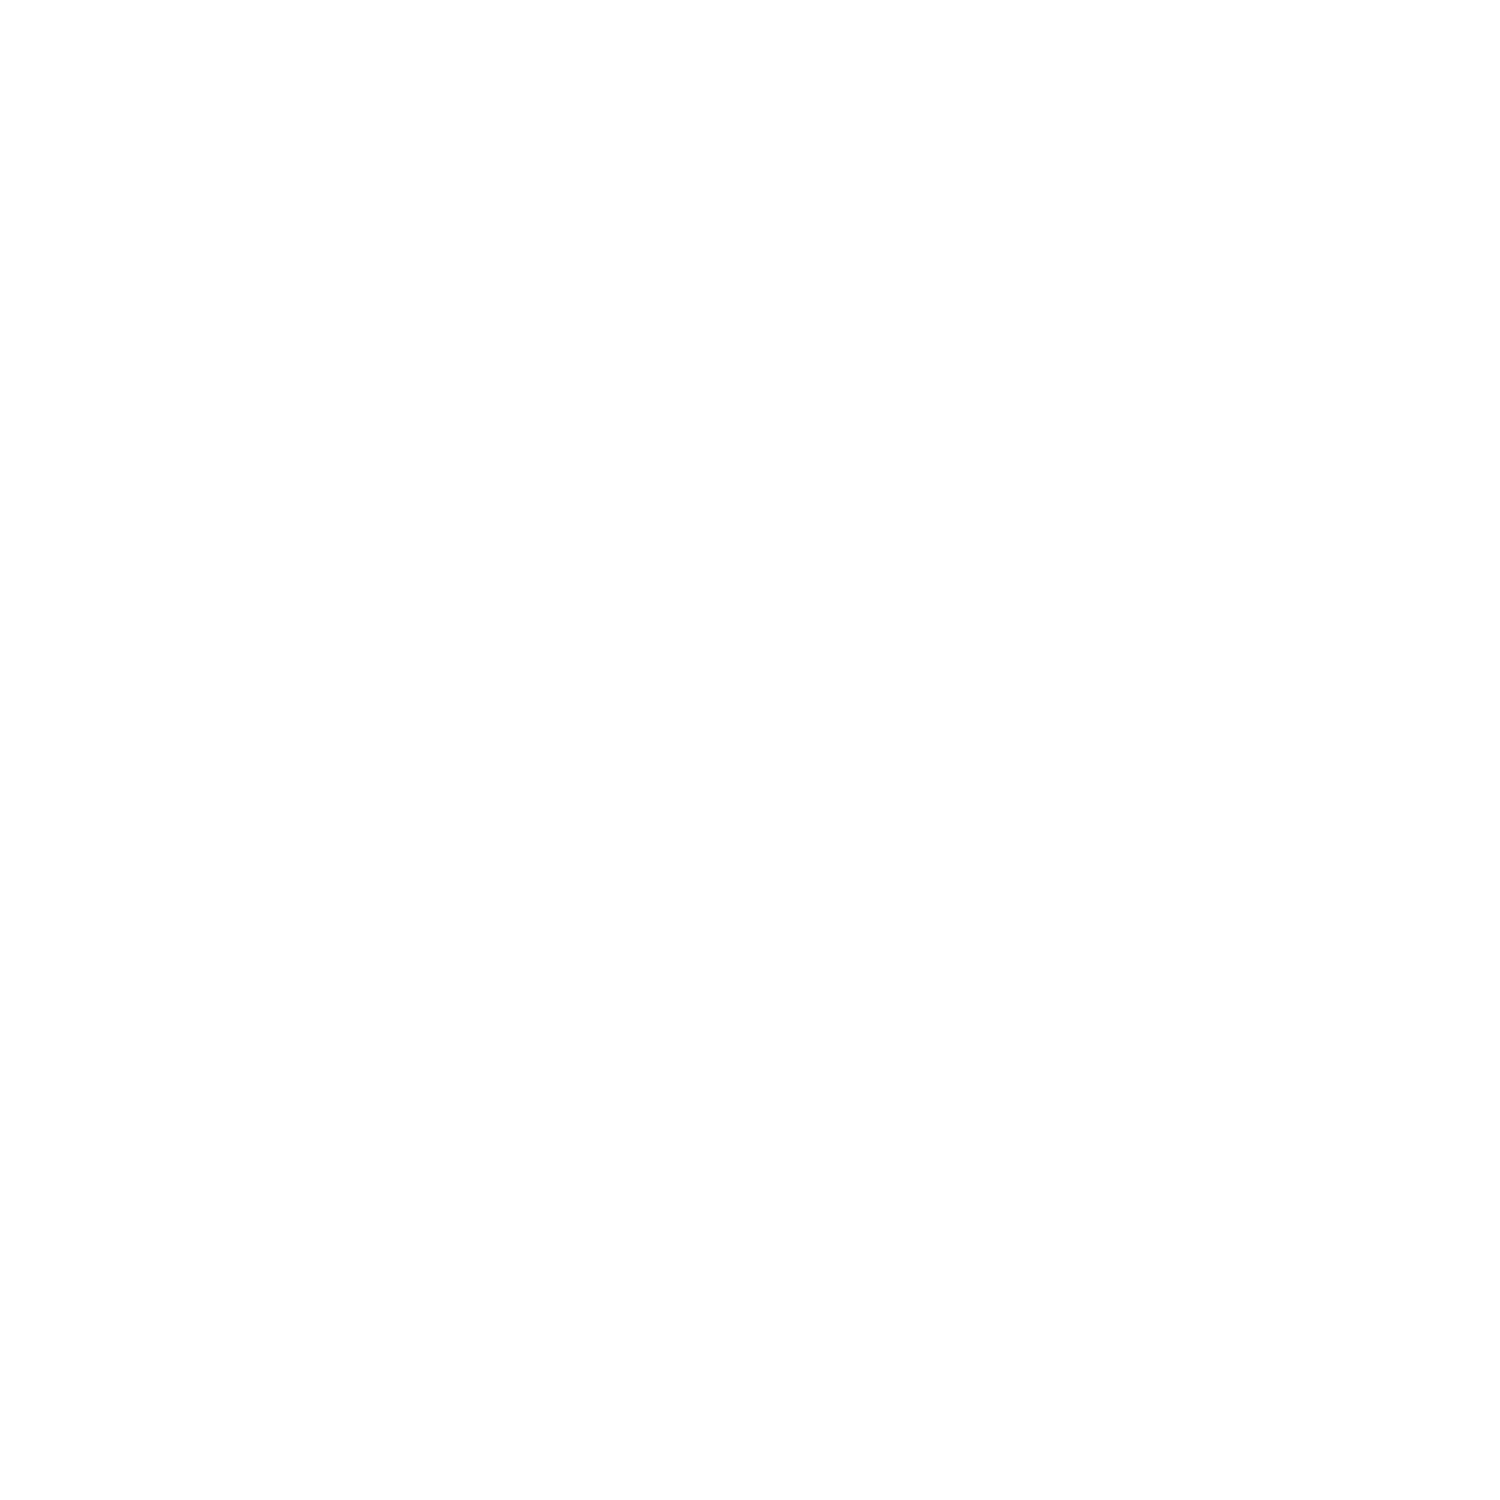 Sabrak Boutique